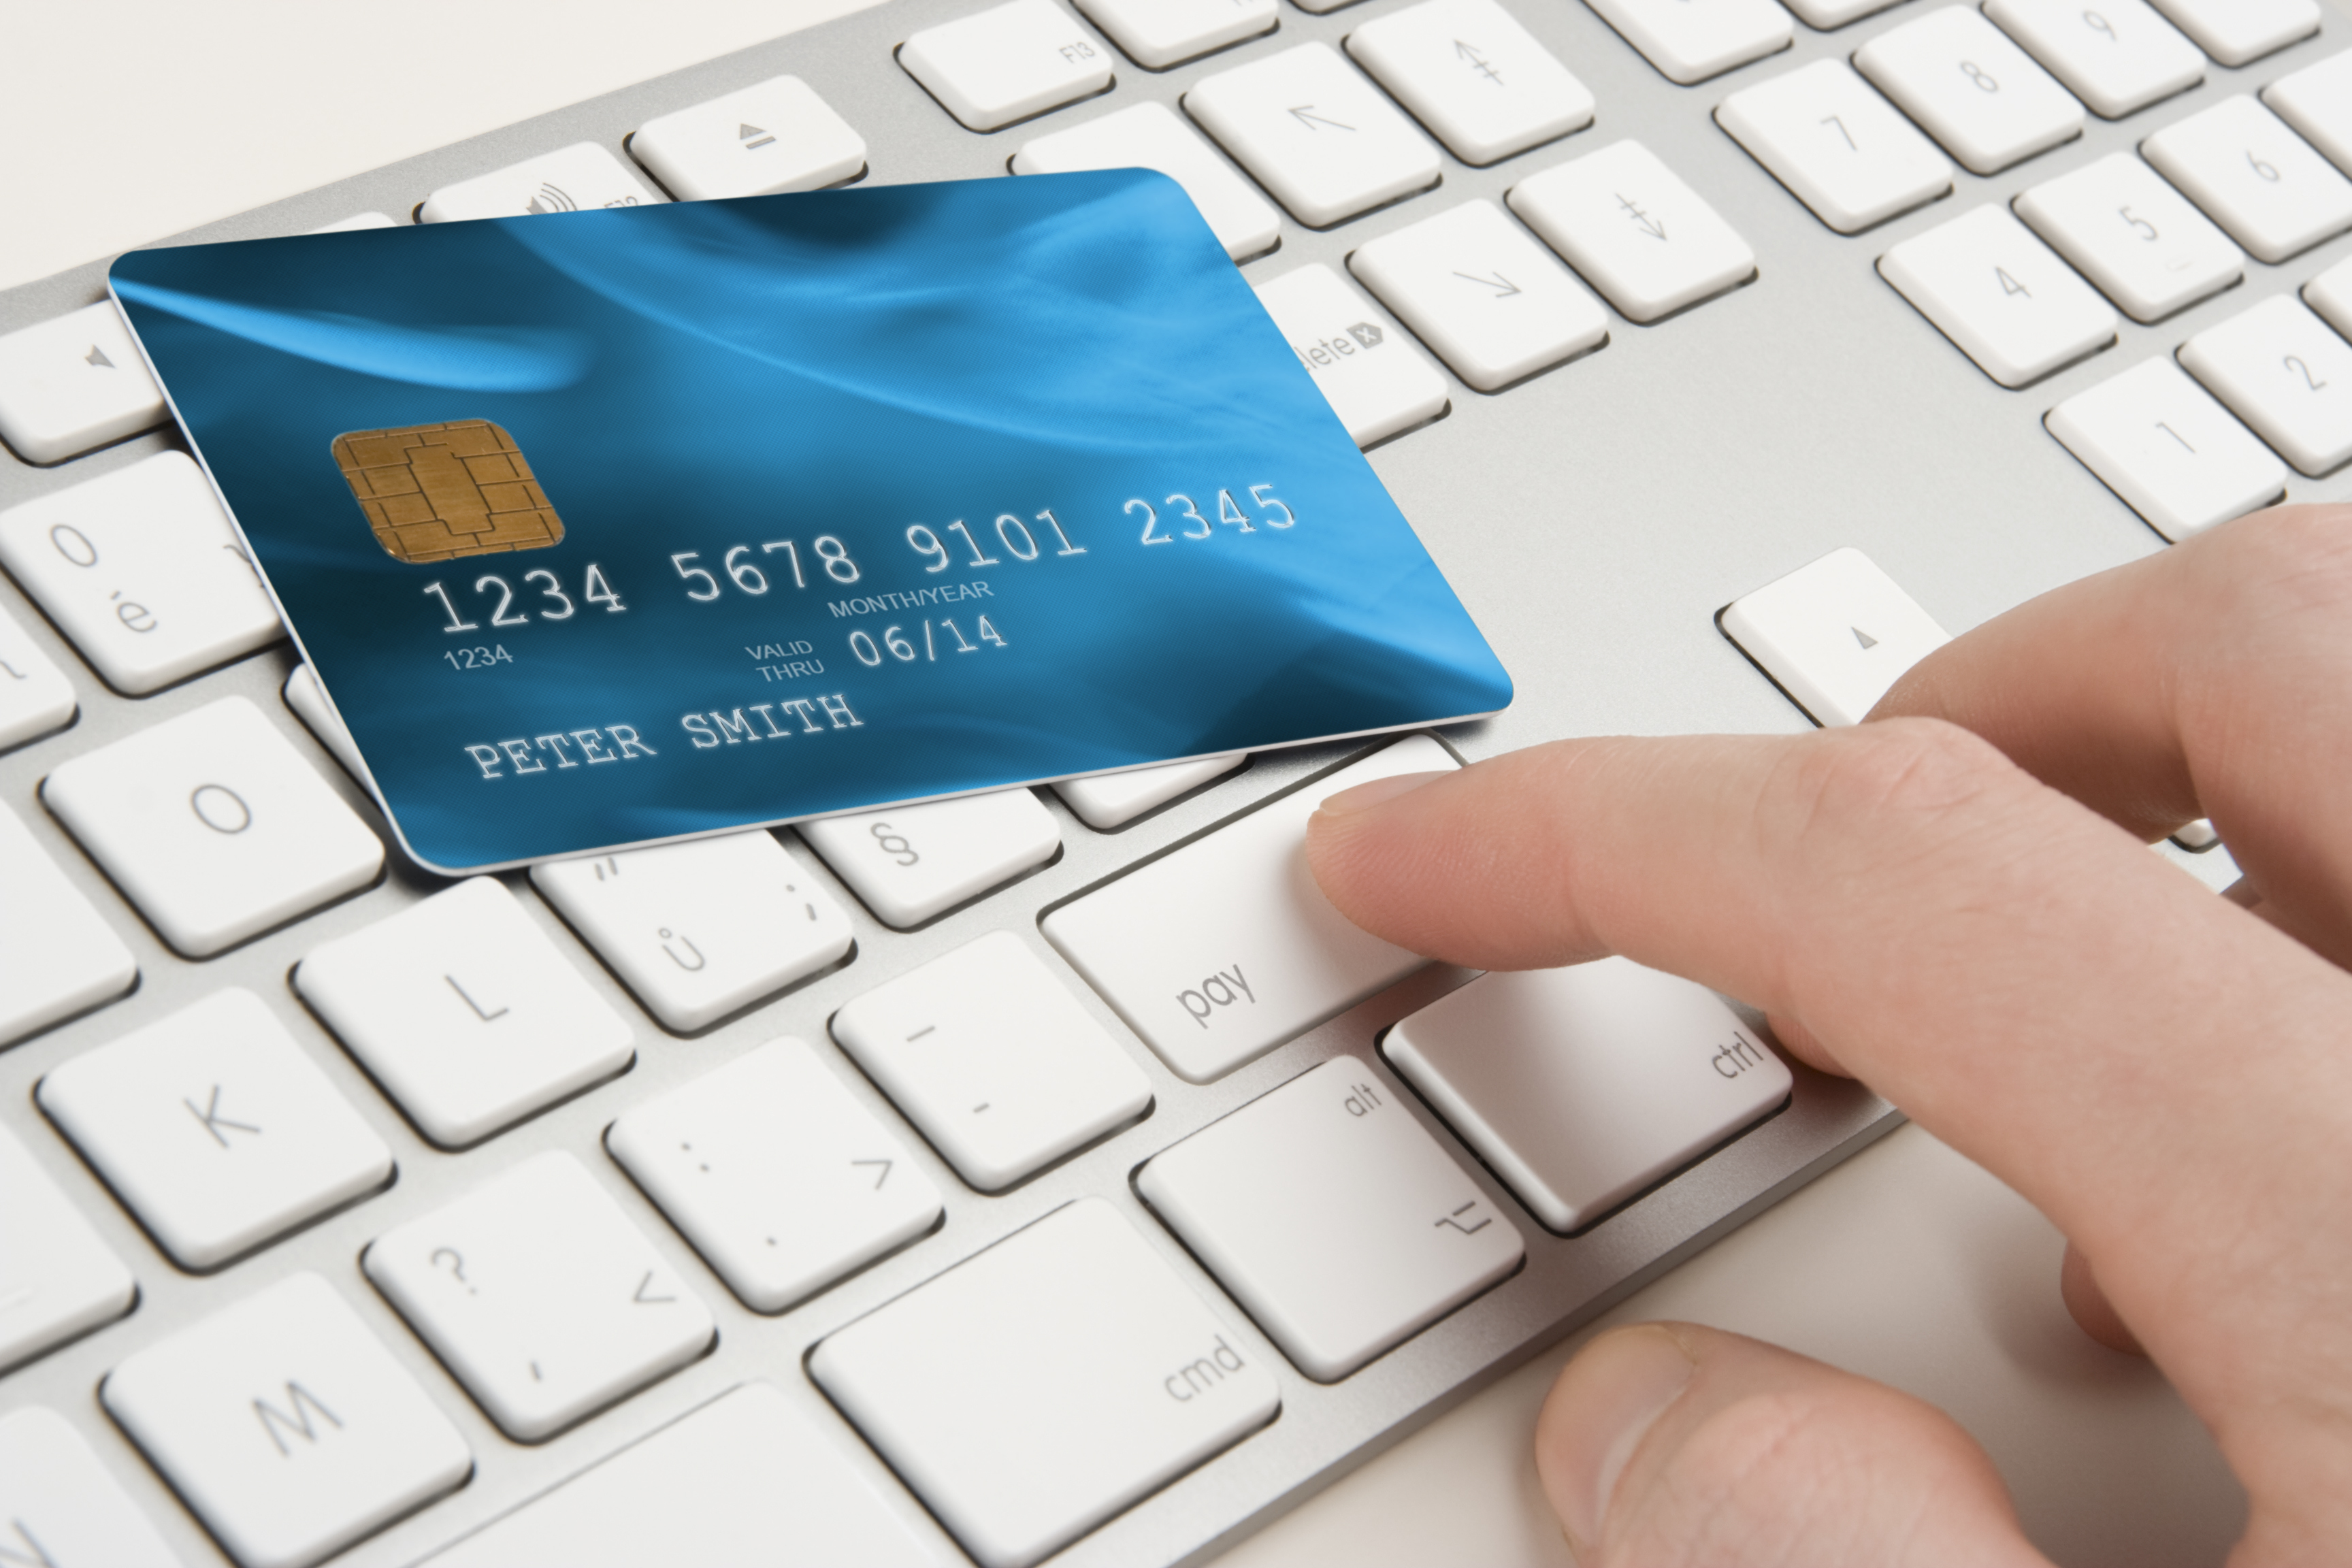 When purchasing online, there are high chances of having your card information stolen. Image Credit: CbsNewYork